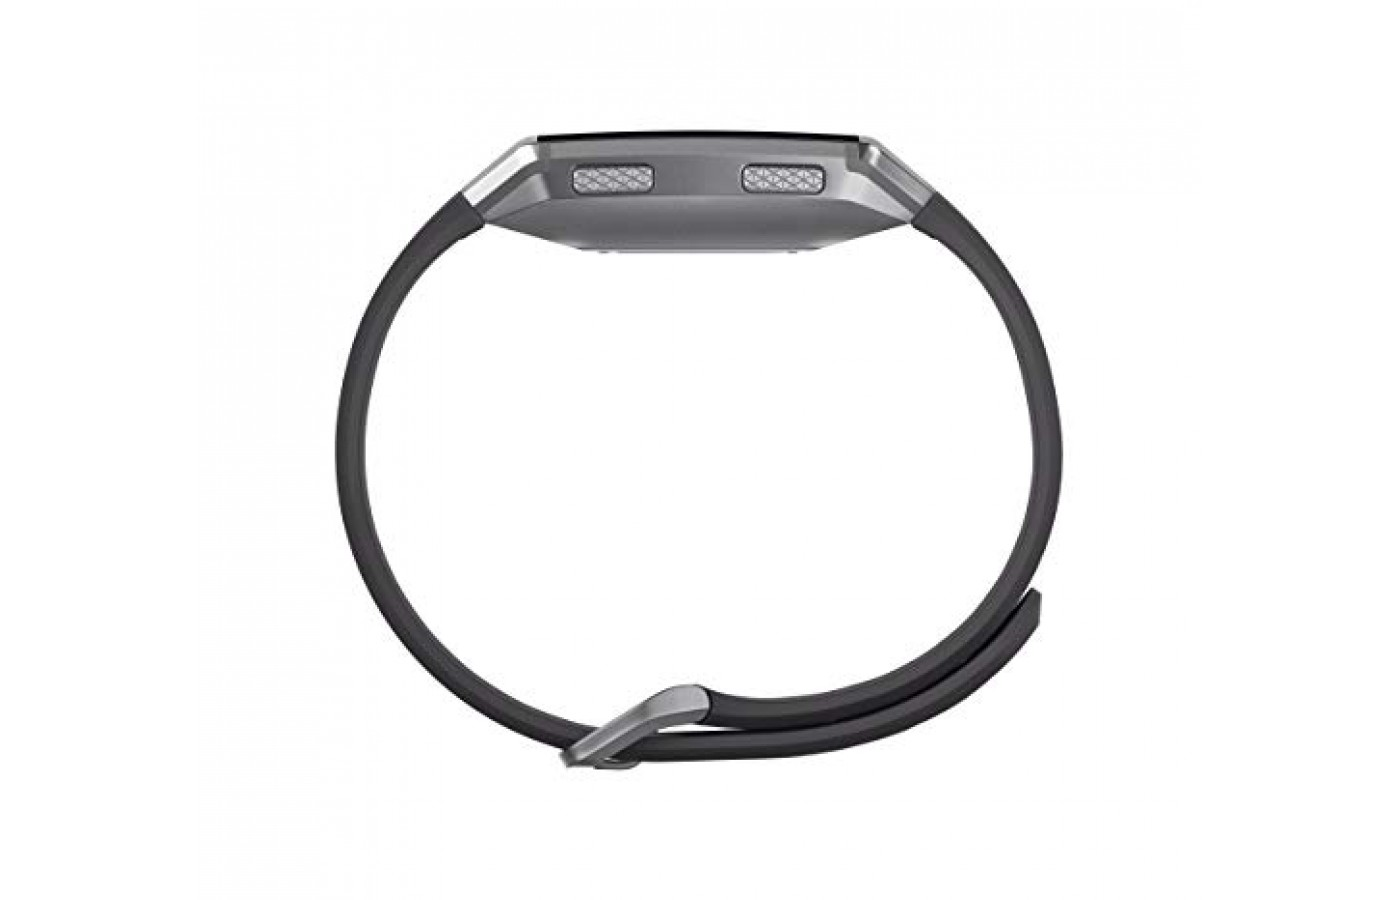 The Fitbit comes with both a wide and a thin band.